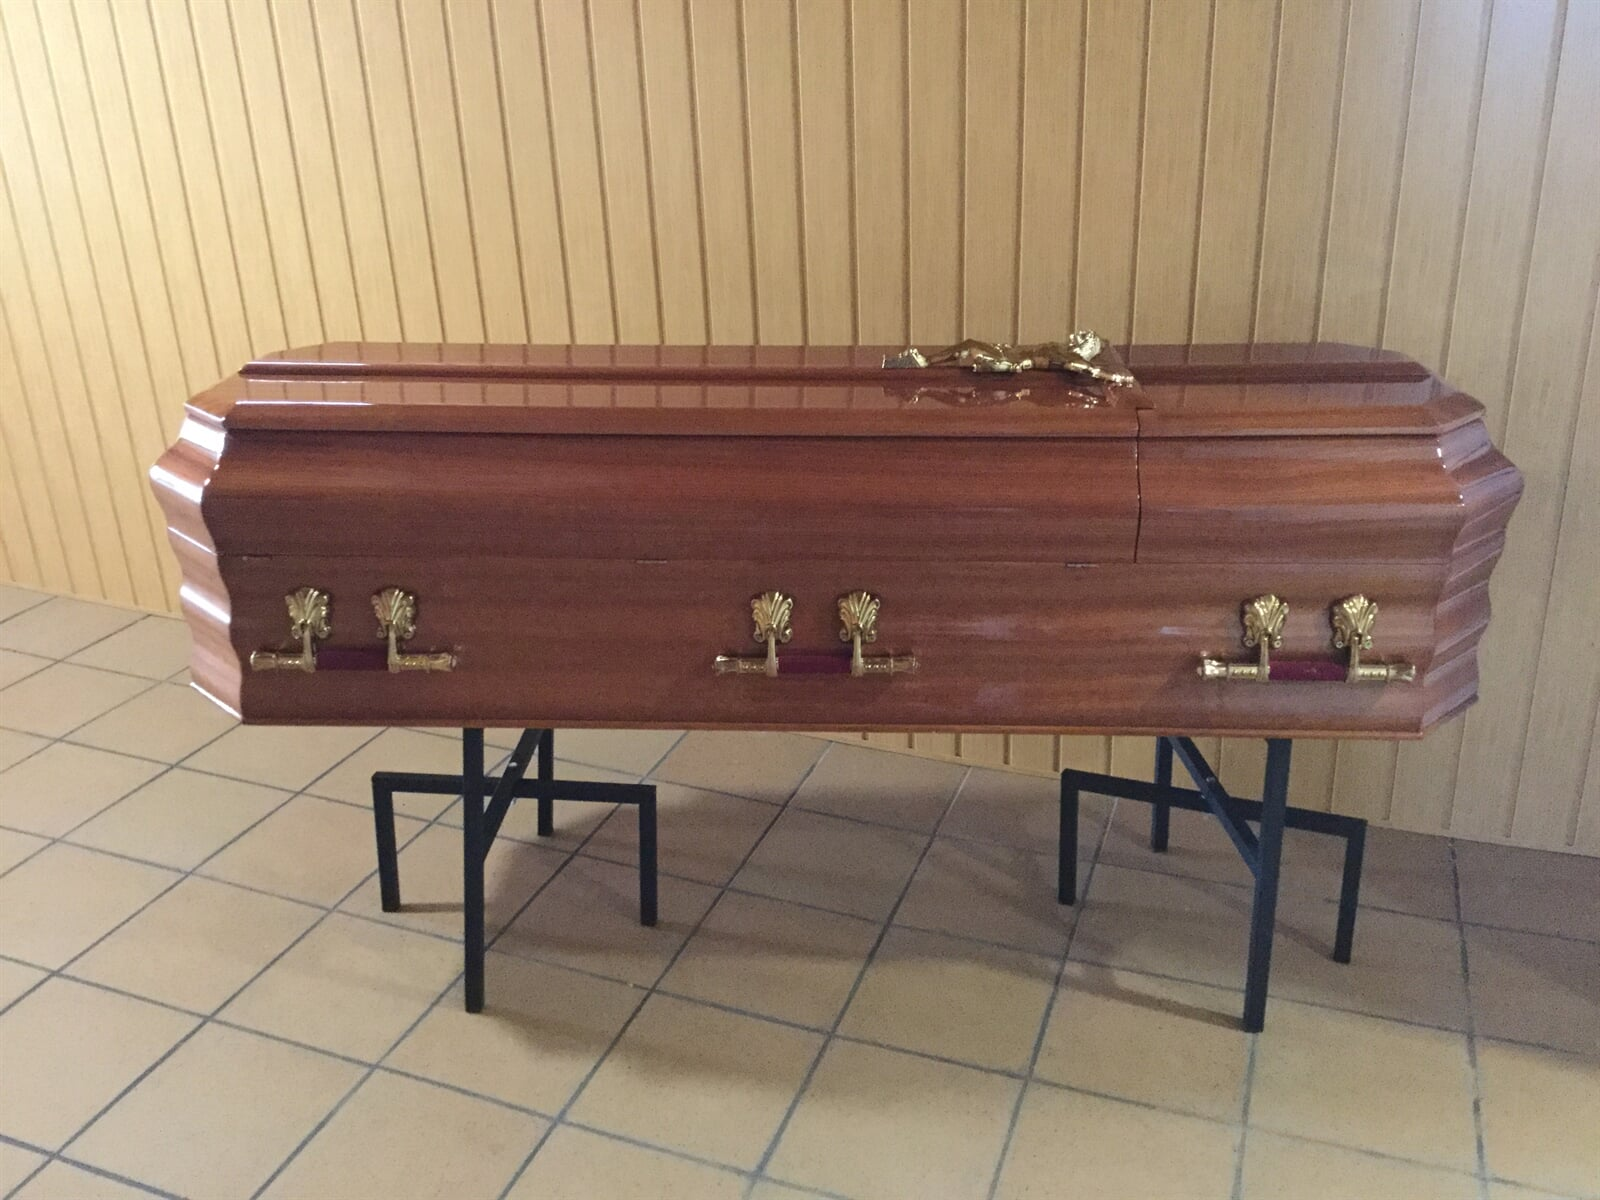 Urns for funerals